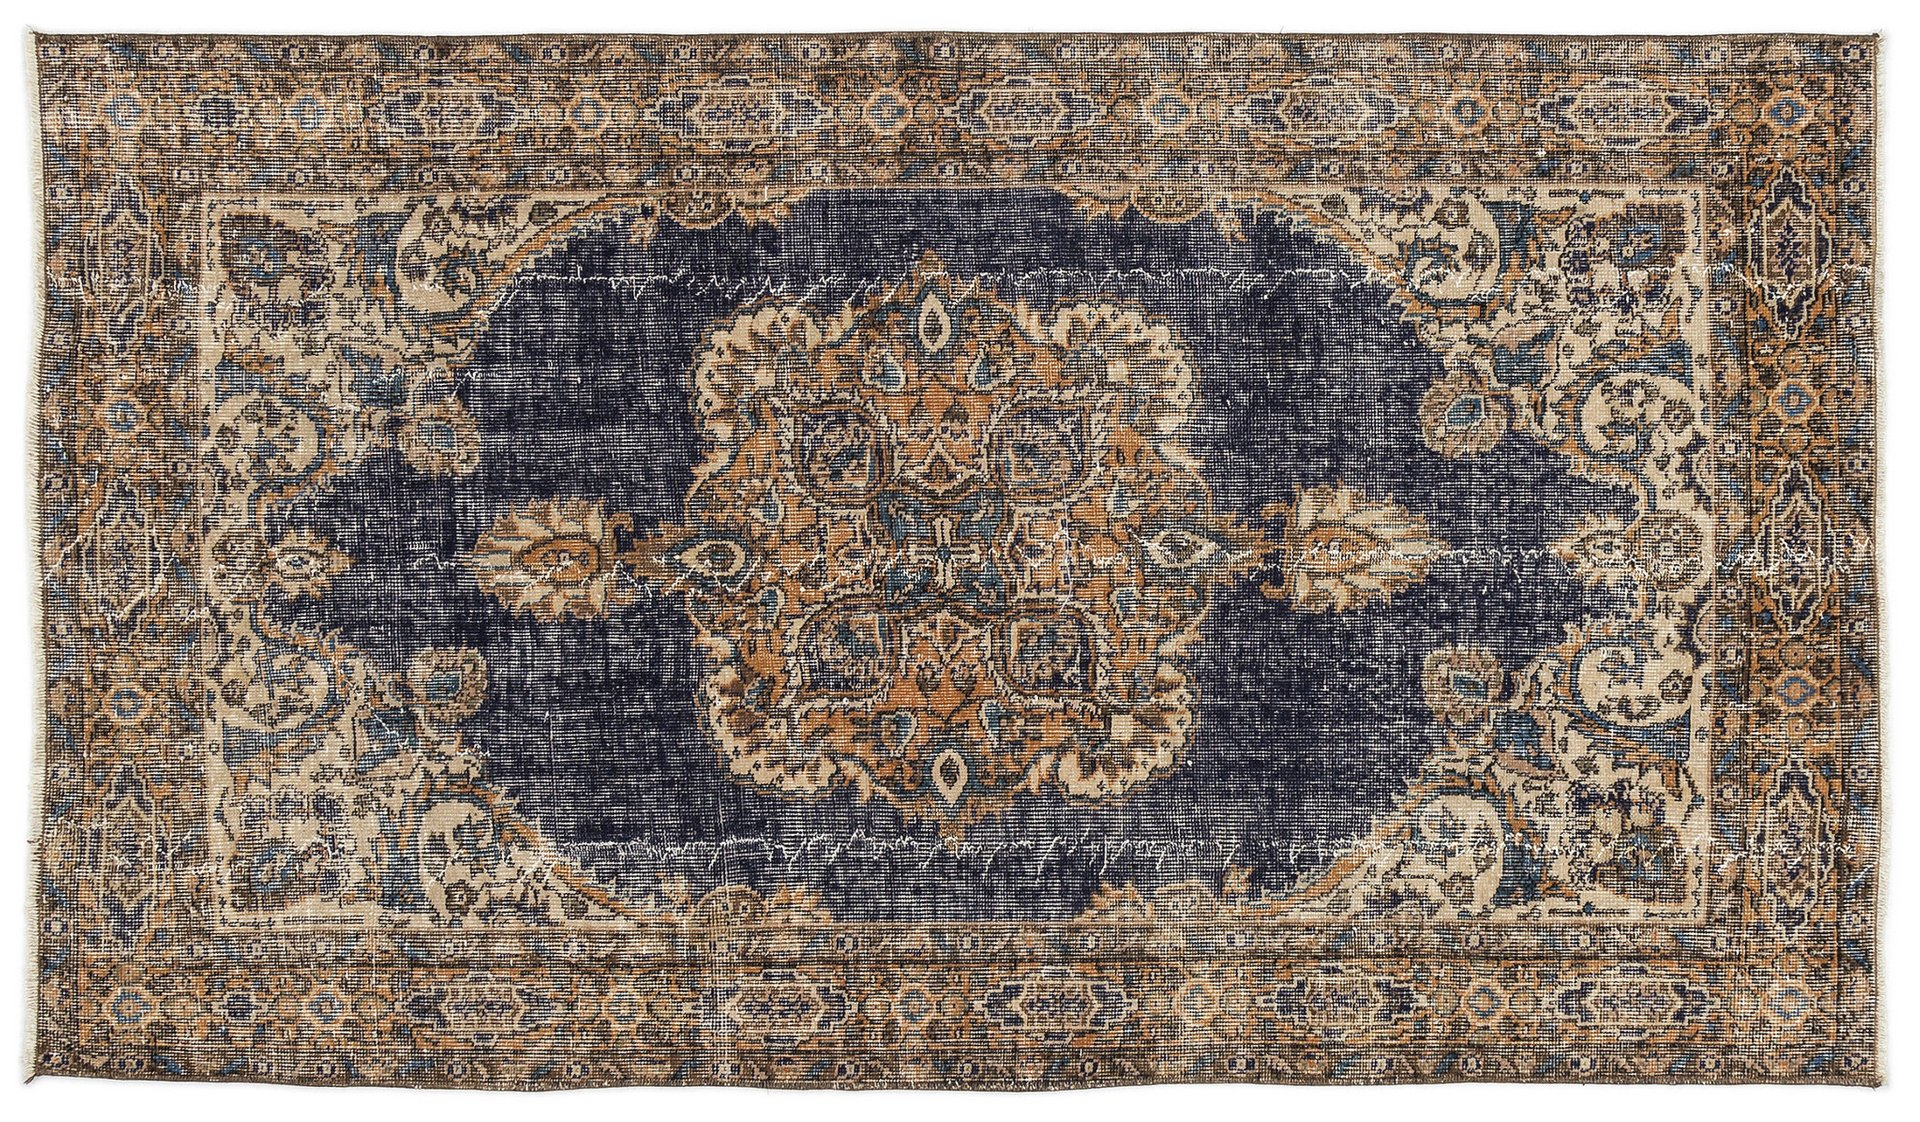 Vintage Overdyed Turkish Rug 1960s